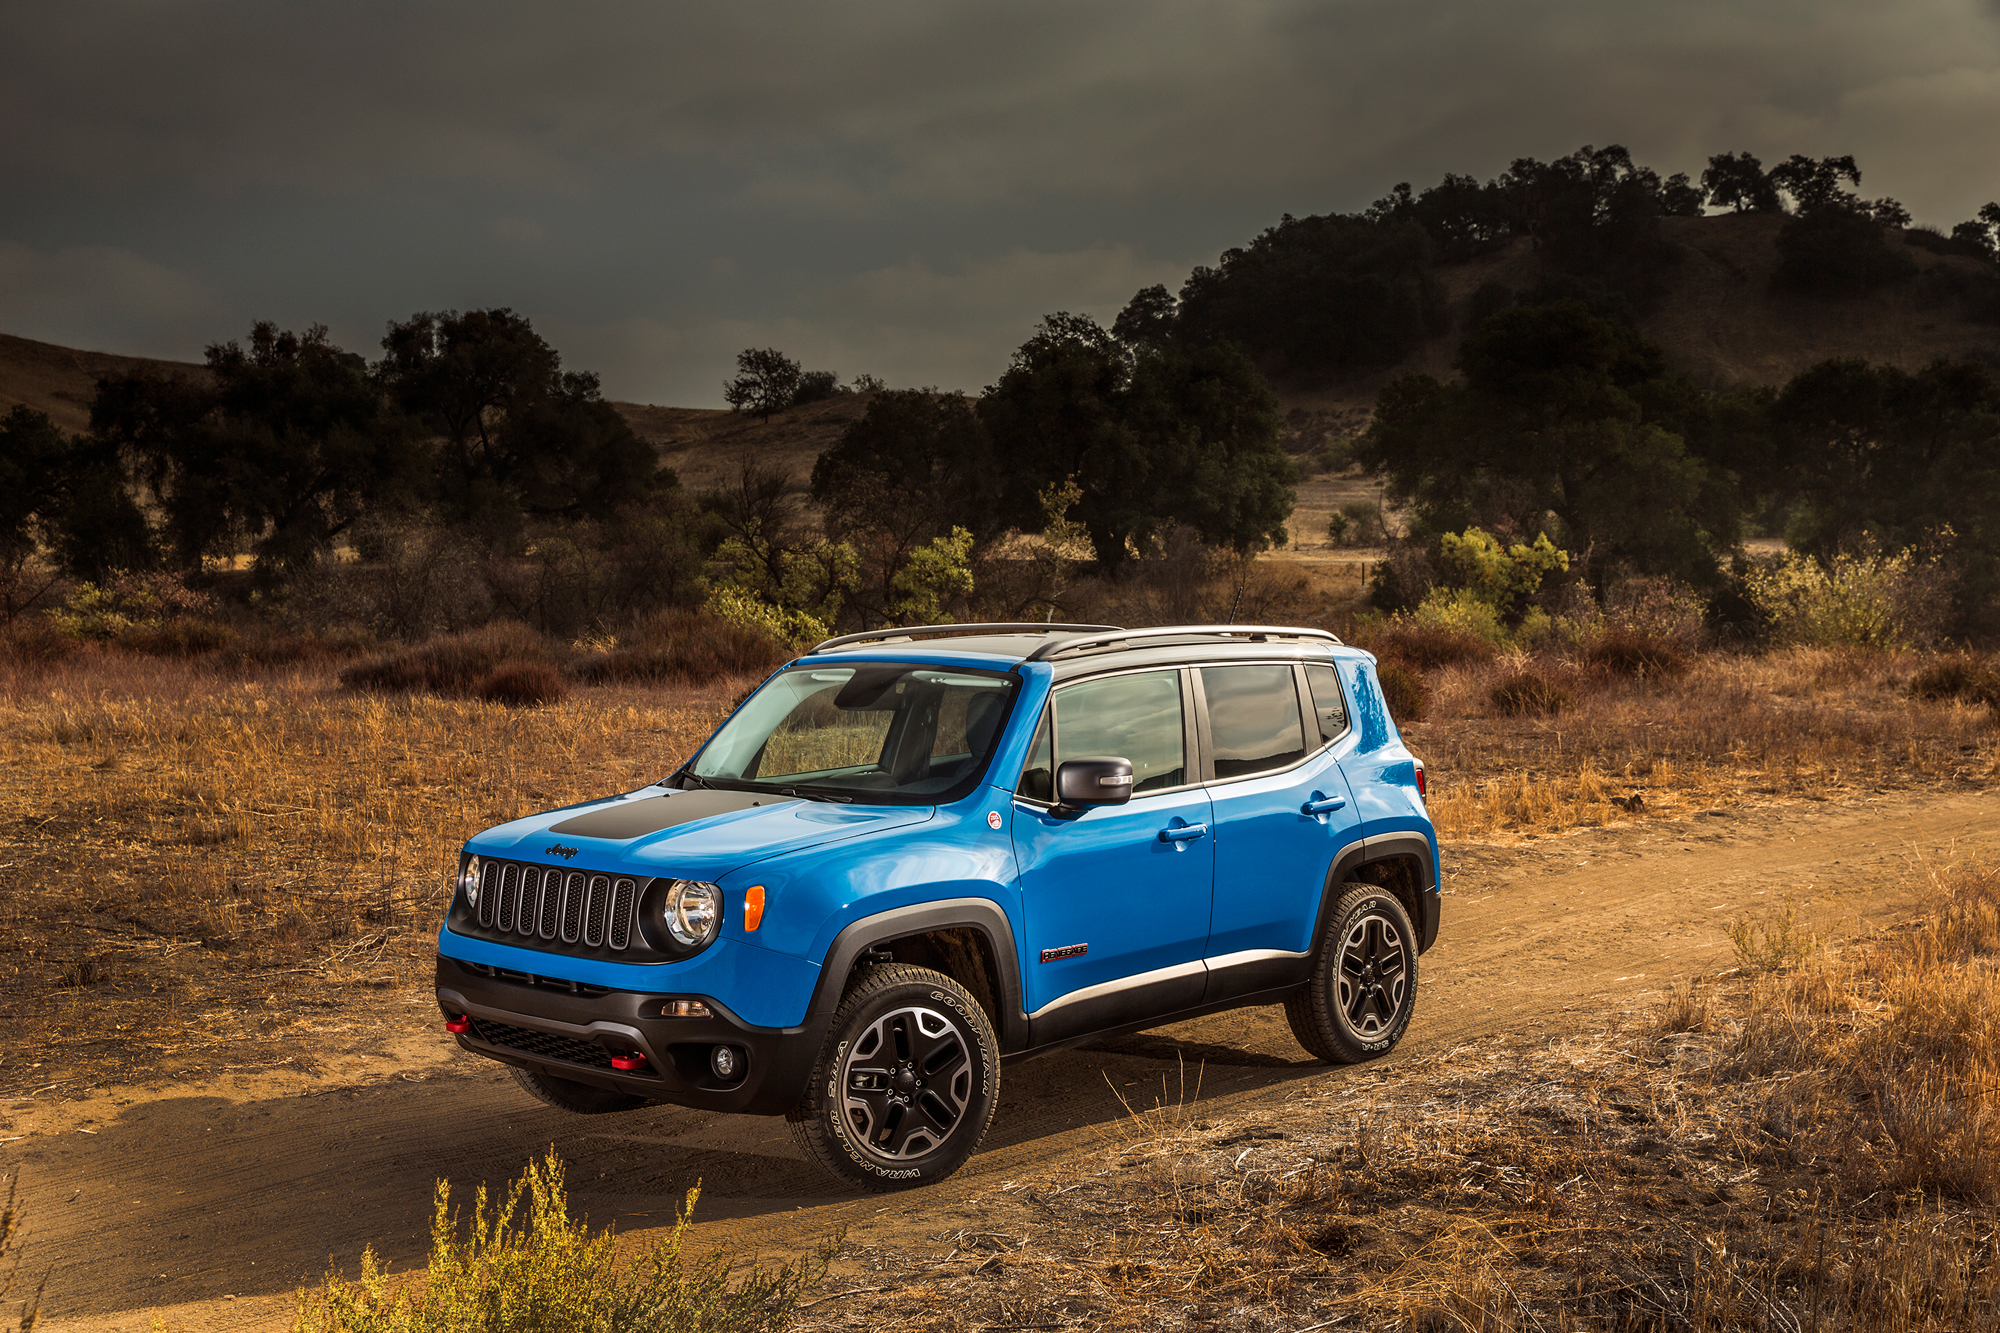 2015 jeep renegade rated at 25 mpg combined » autoguide news